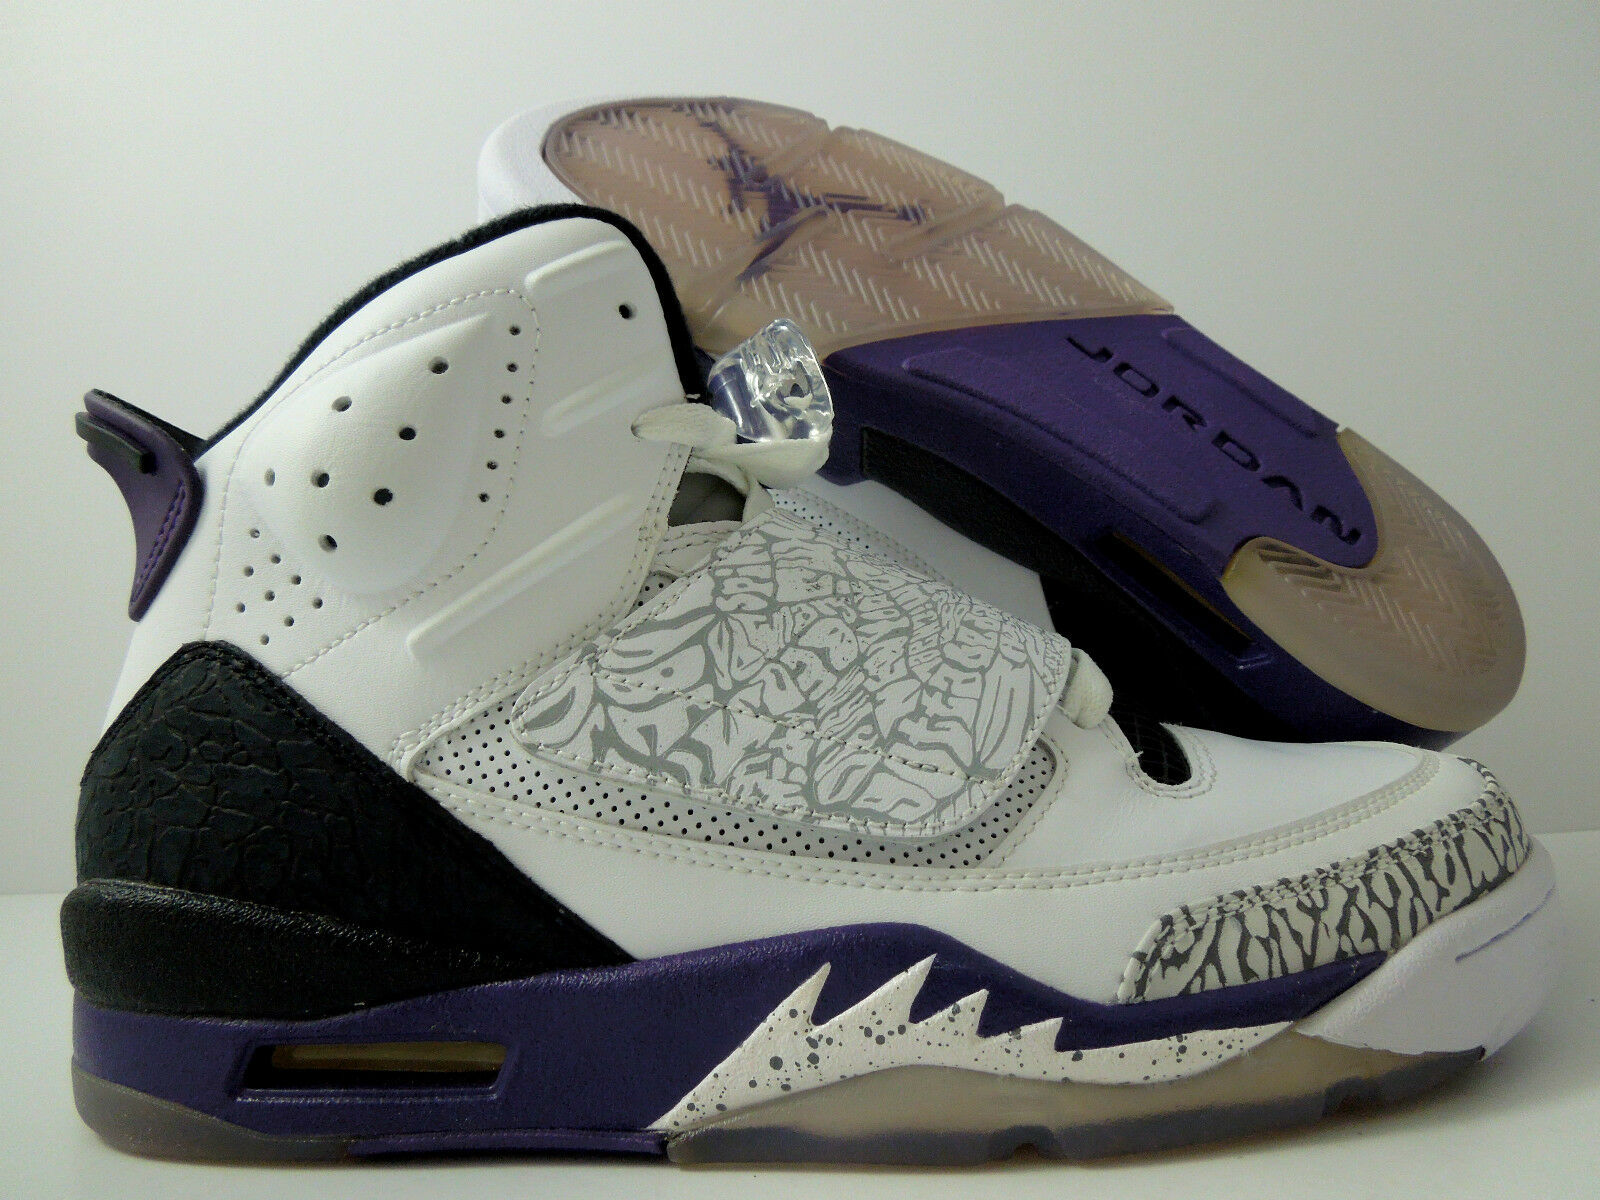 NIKE AIR JORDAN SON OF MARS WHITE-CLUB PURPLE-GREY-BLACK Price reduction The latest discount shoes for men and women